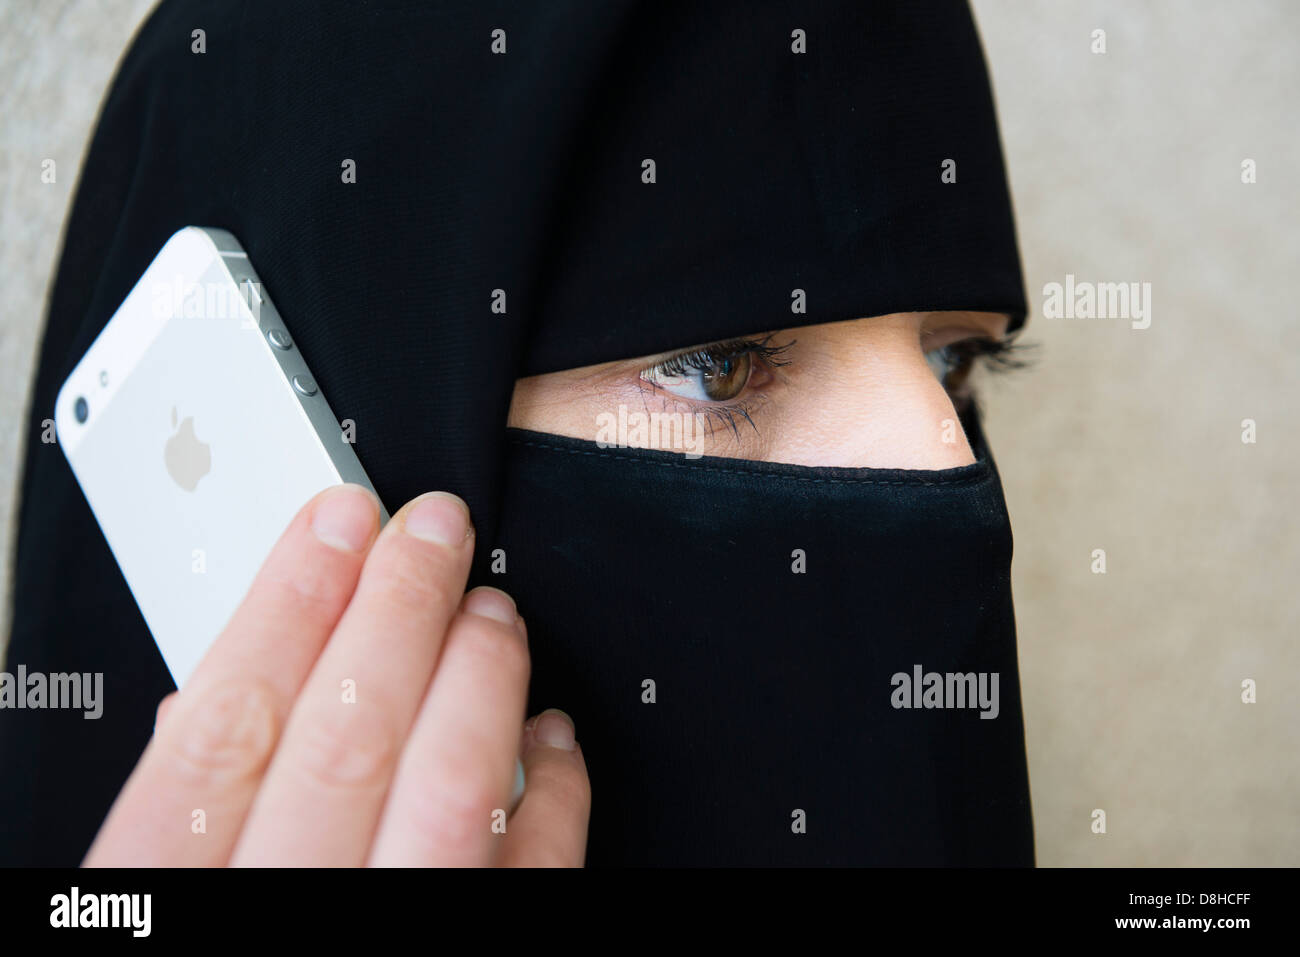 Arab woman wearing traditional black niqab face covering using iPhone 5 to make call - Stock Image